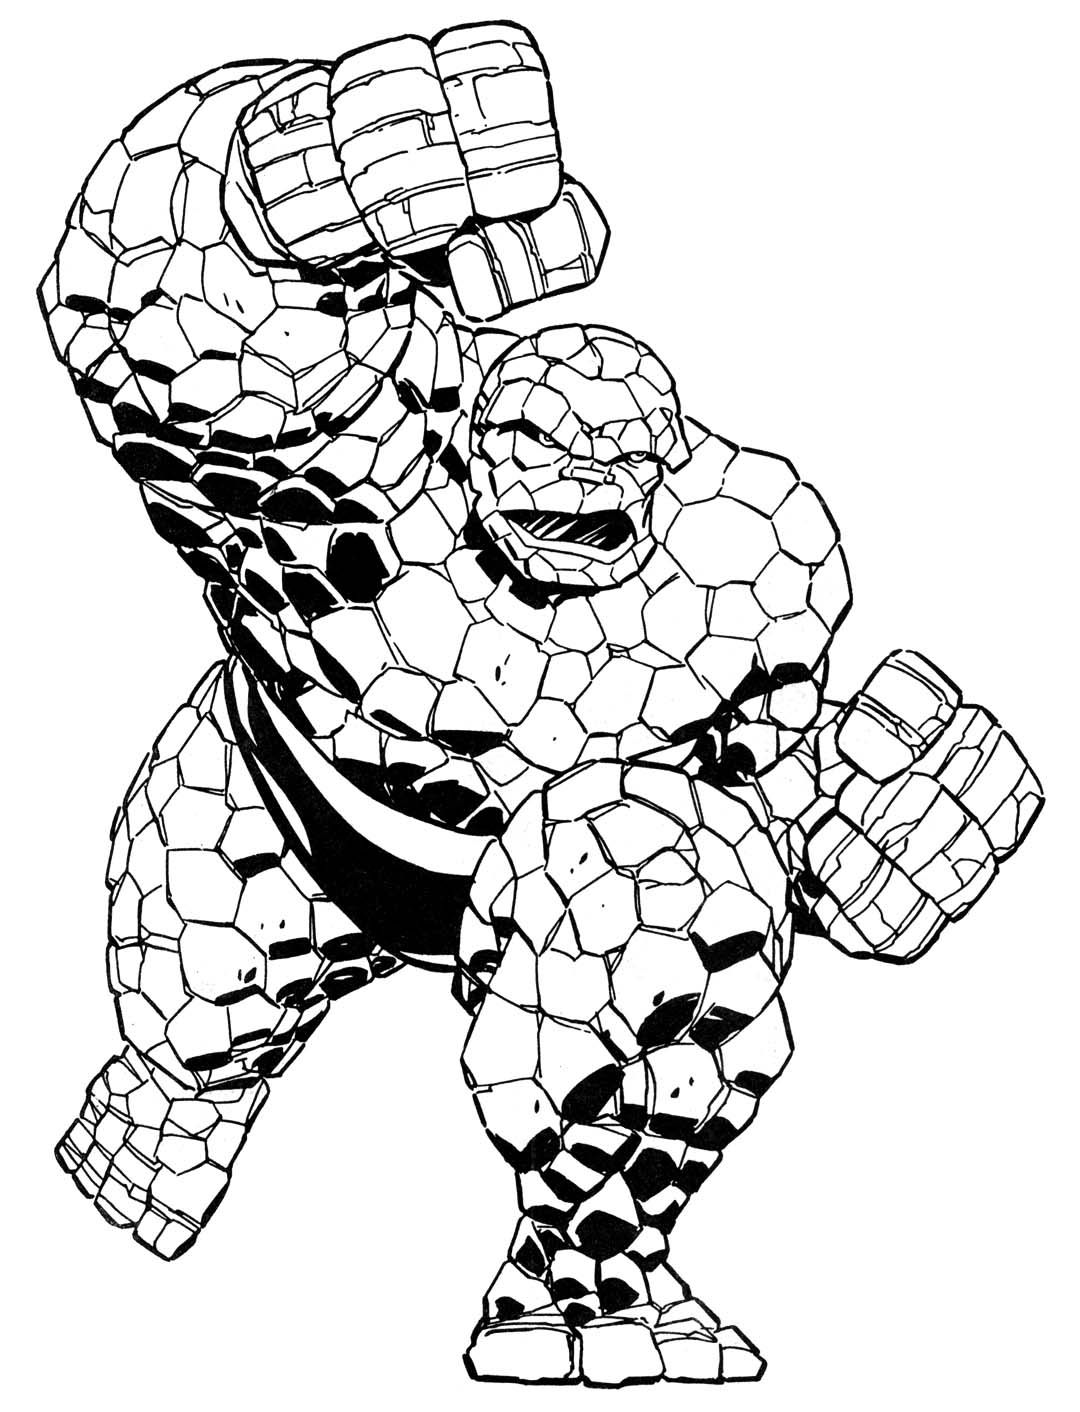 Coloring book marvel super heroes,marvel coloring pages